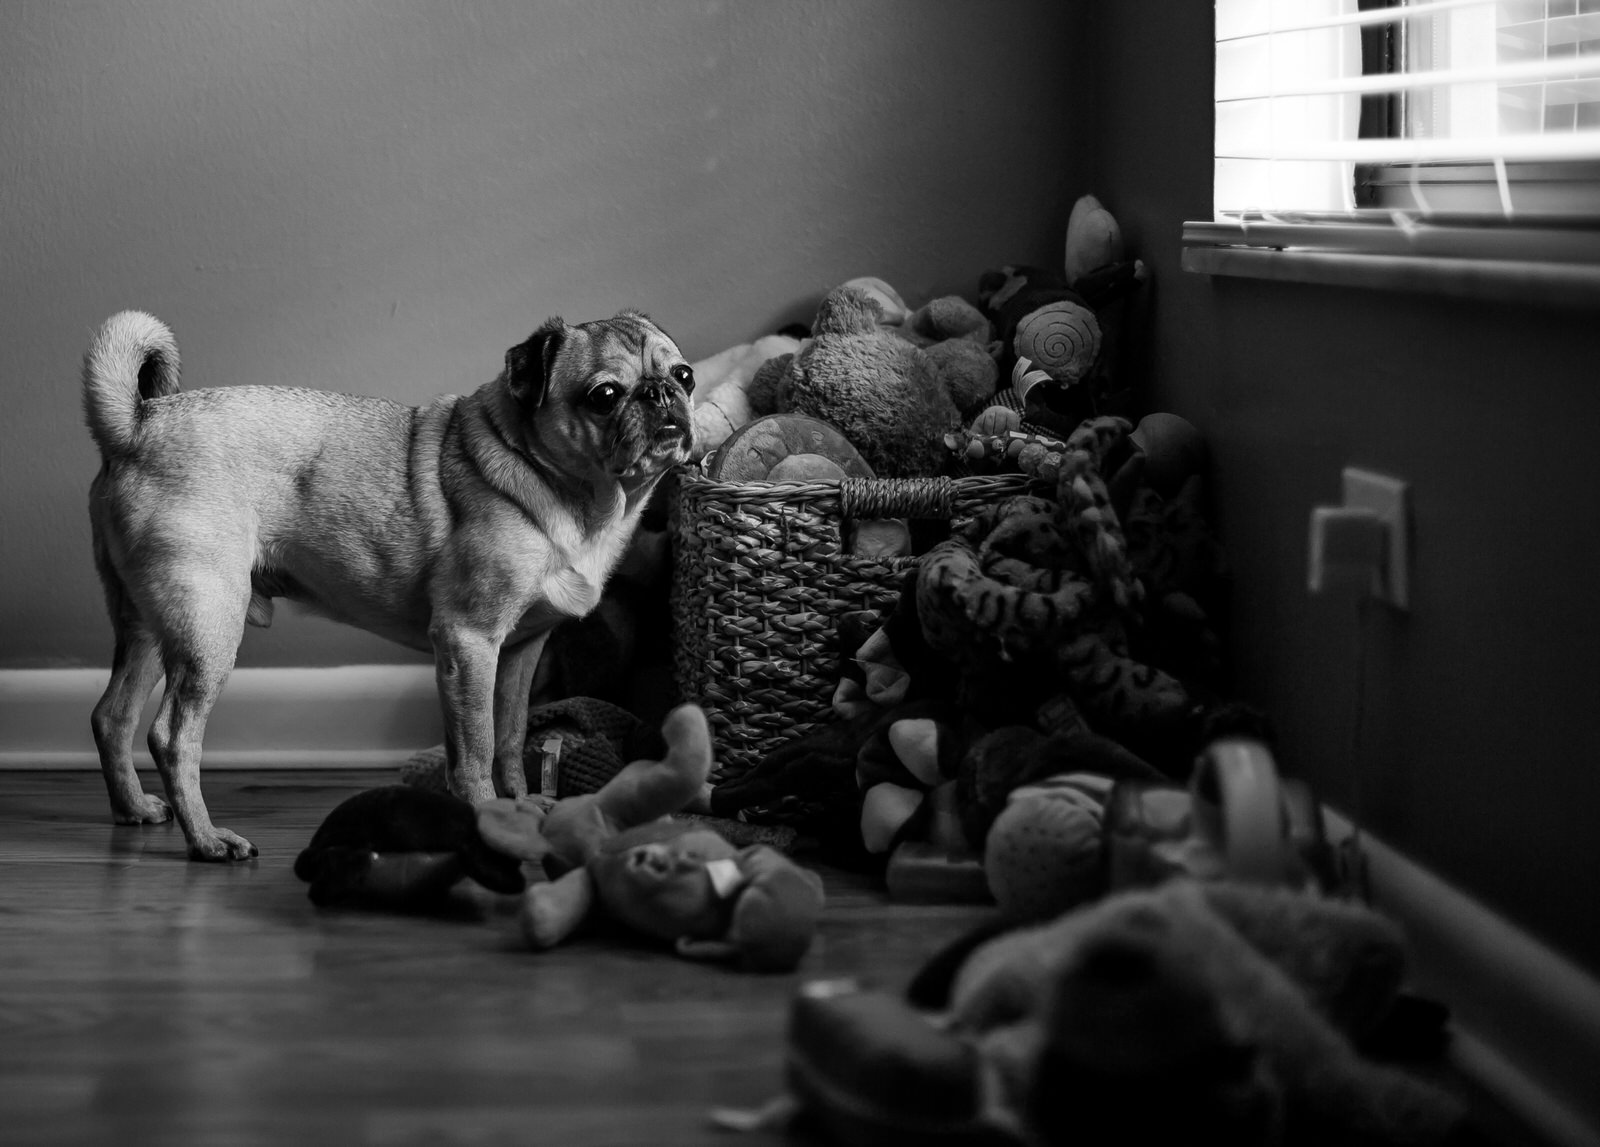 pug_with_toys_black_and_white.jpg